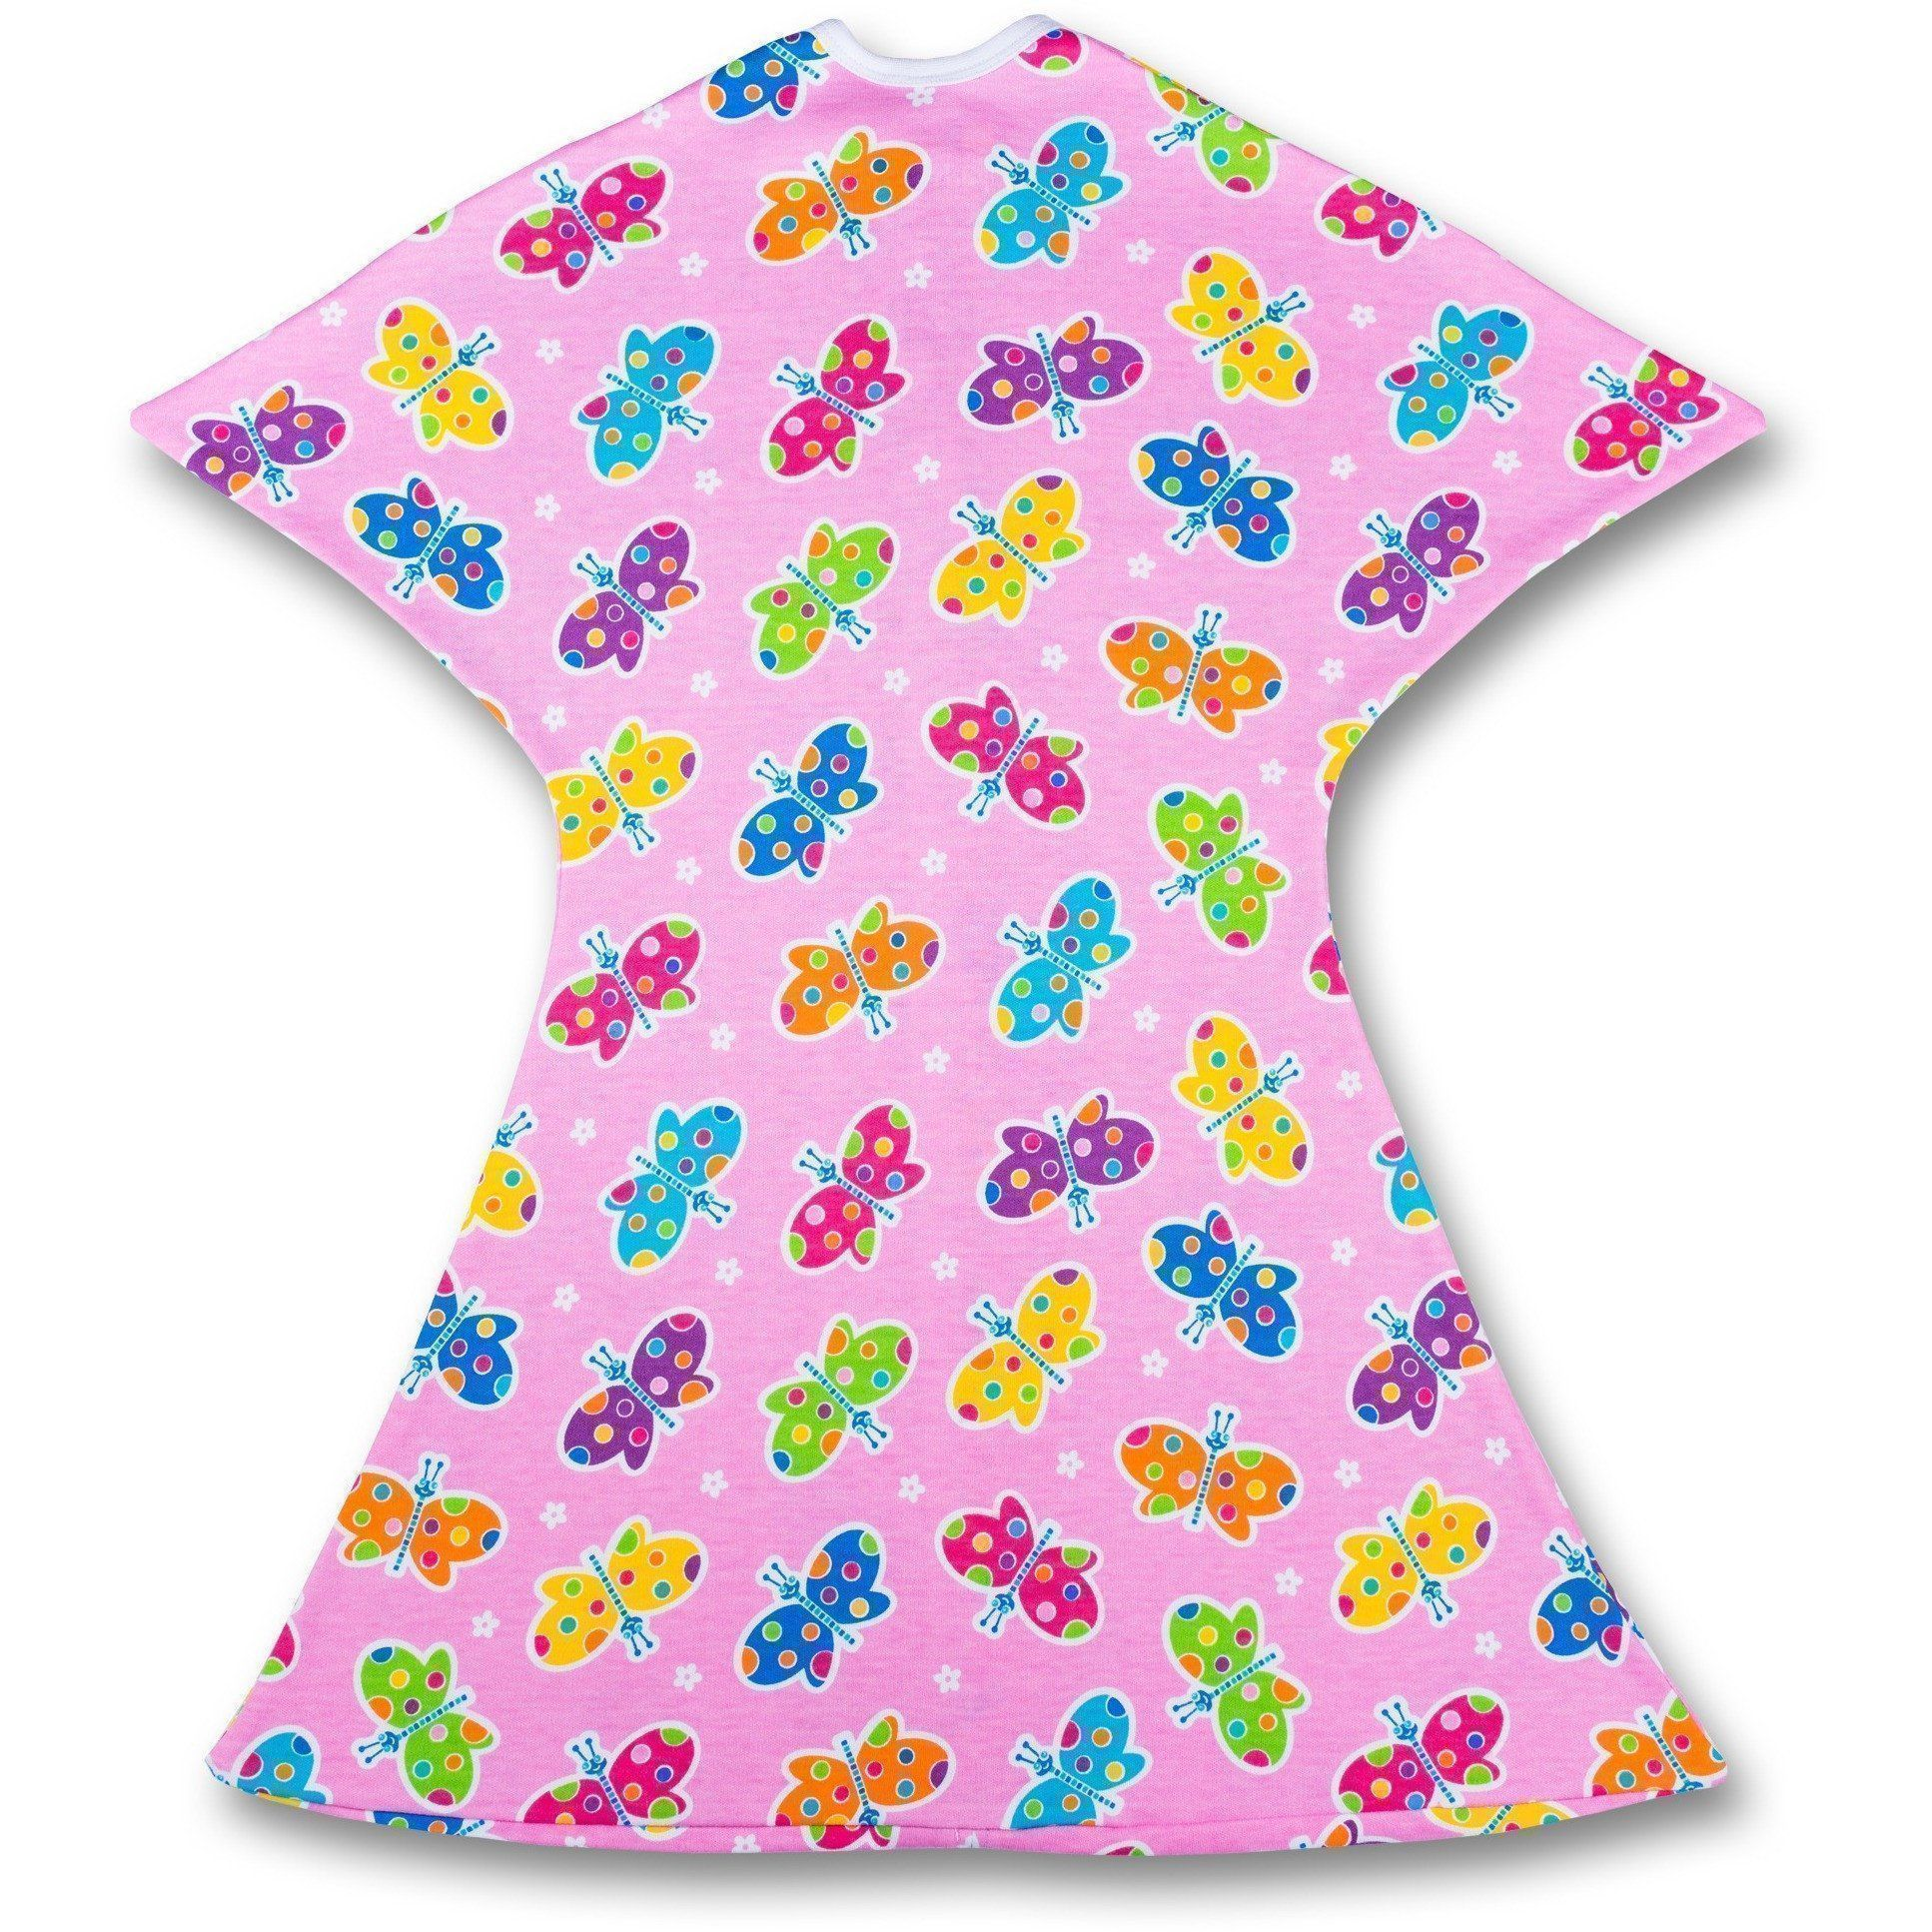 Baby wearable blanket with butterflies print  babywearableblanket   babywearableblankets 595c39118